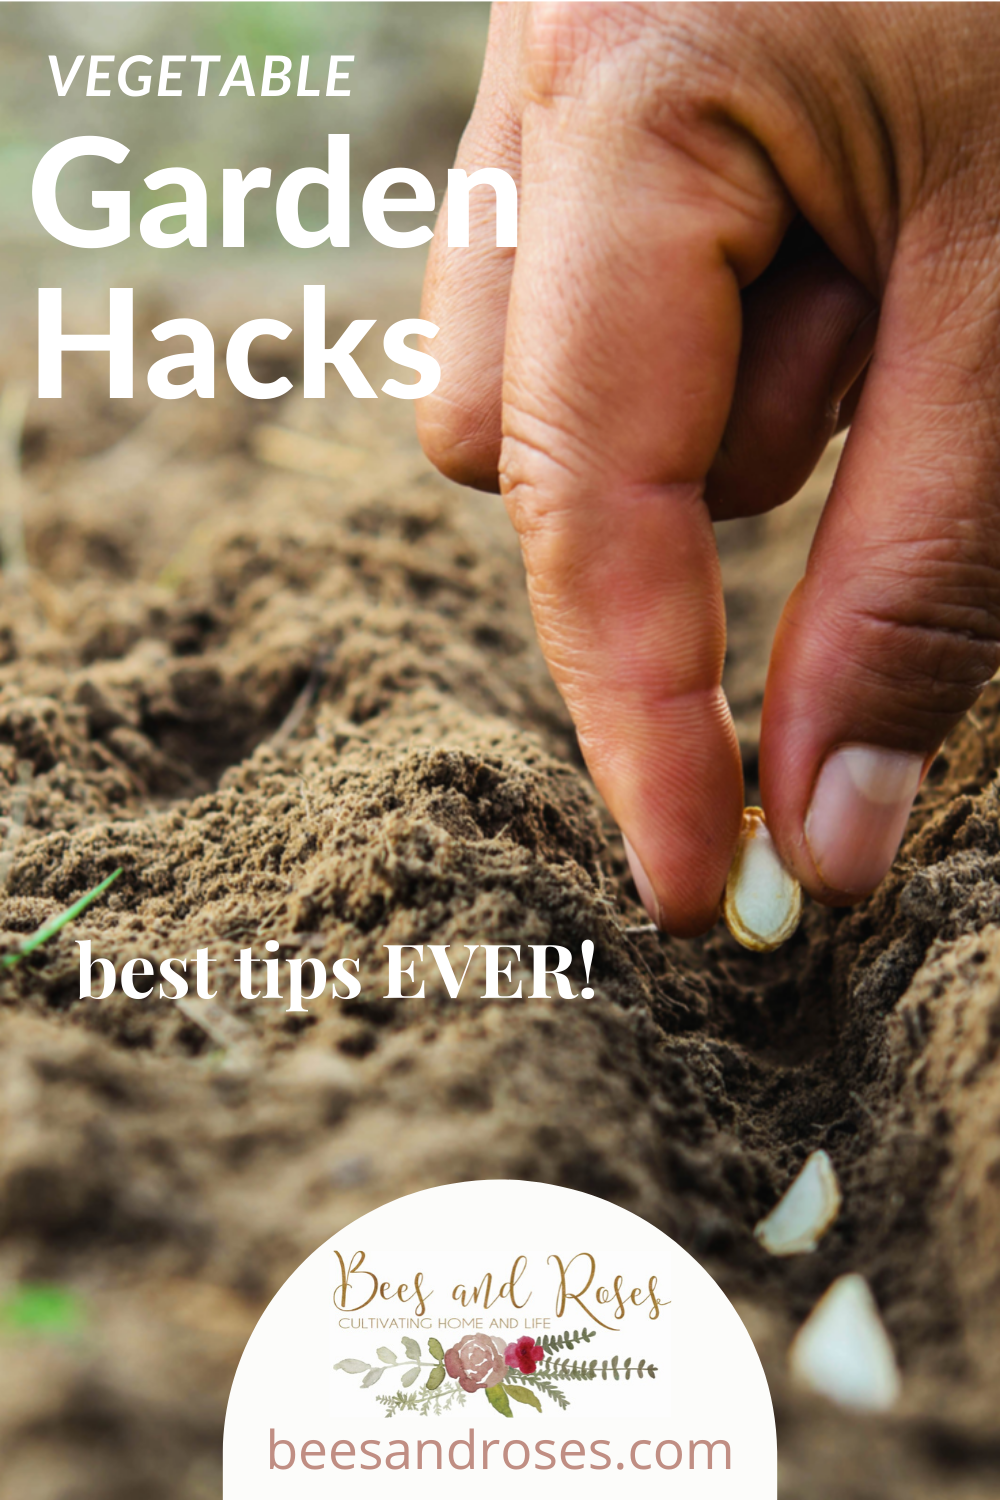 Vegetable garden might seem intimidating, but with these vegetable garden hacks, it's easy to have a high yield every year! Check them out today for the healthiest plants all year long. #gardeninghacks #vegetable #beesandrosesblog